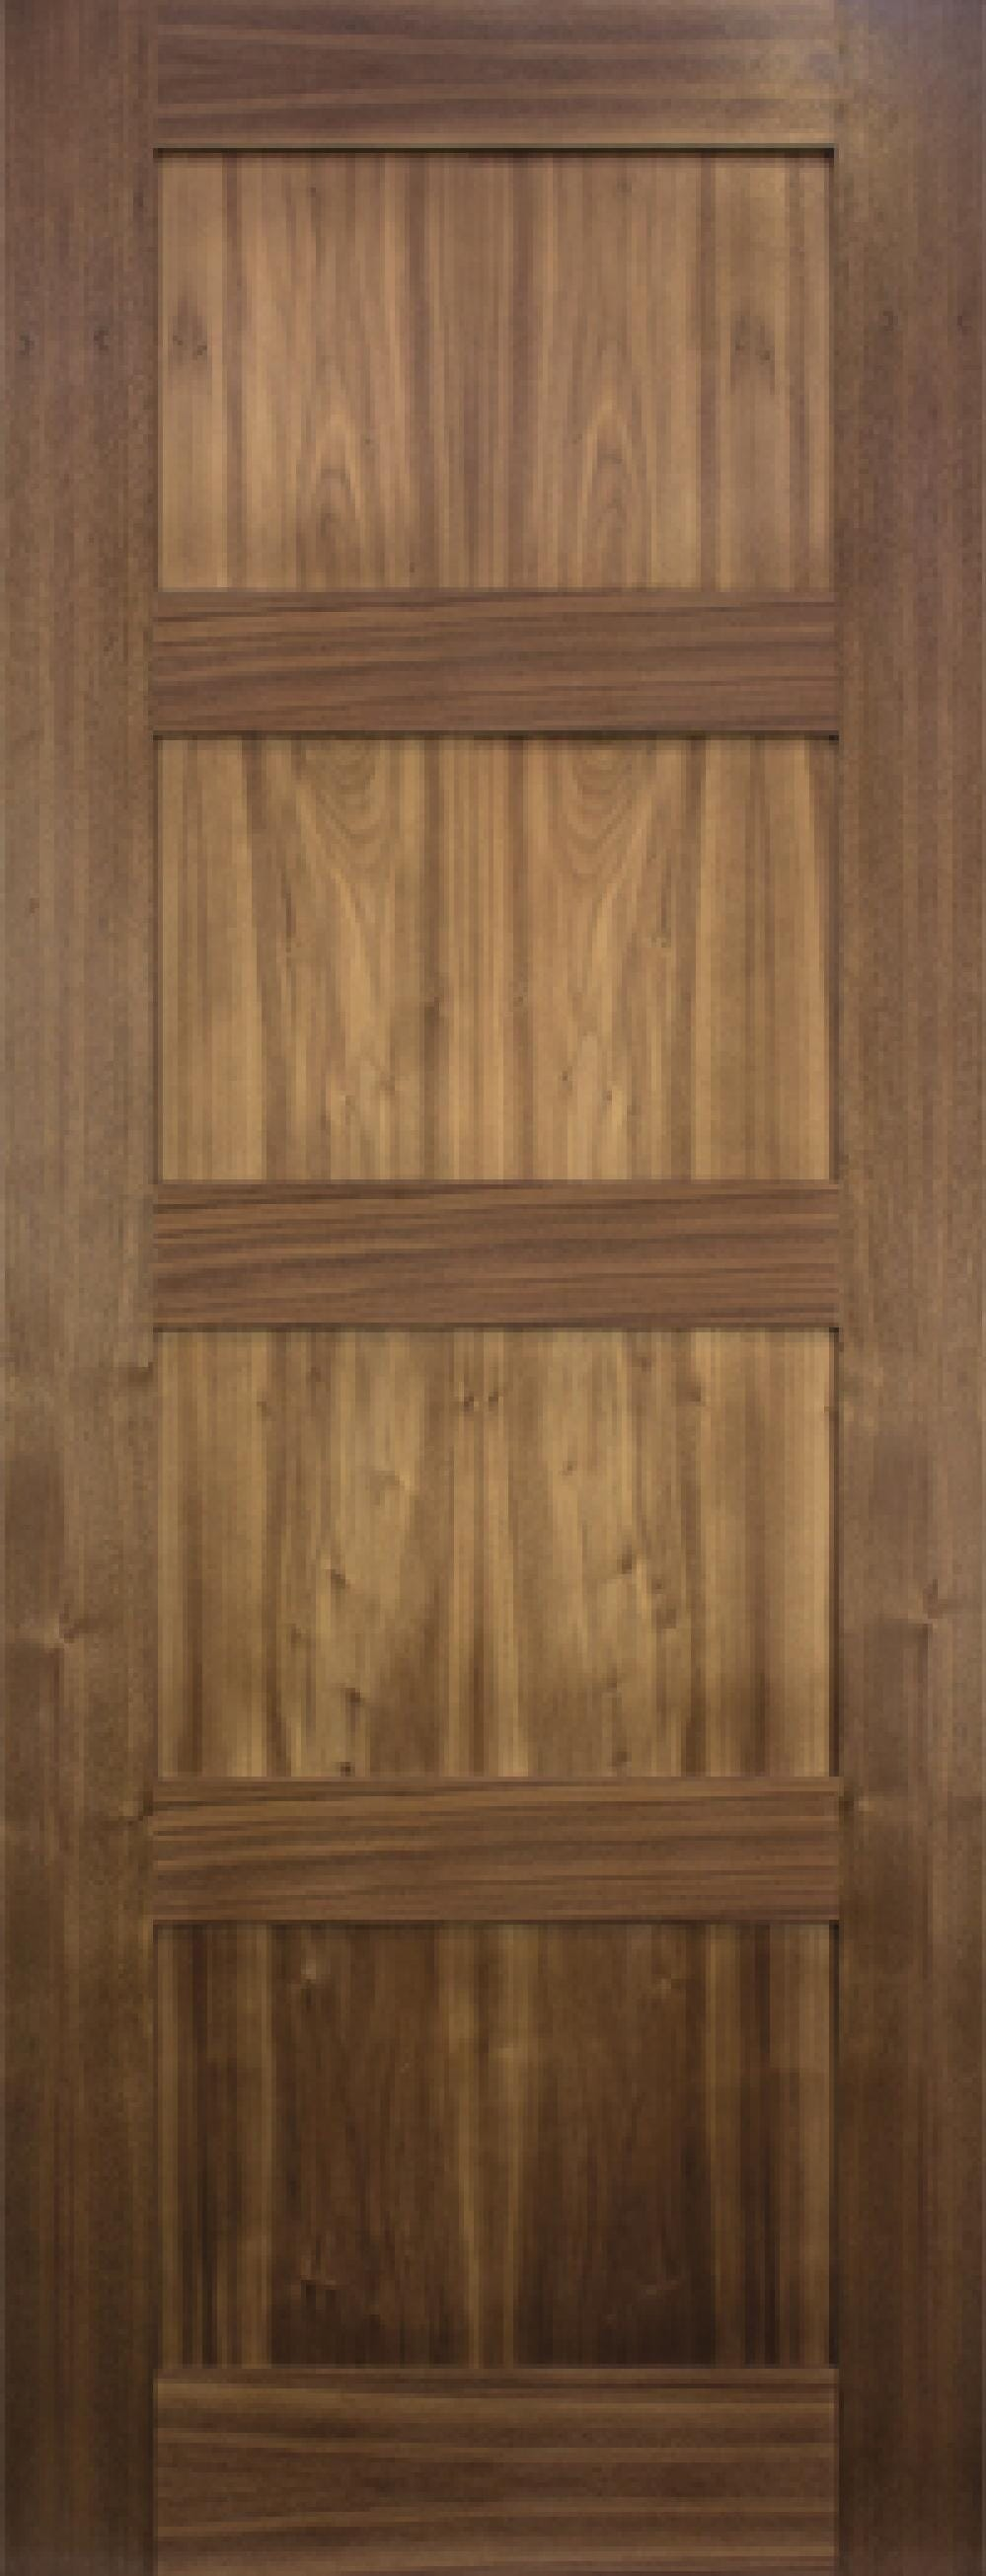 Coventry Walnut - Prefinished Image